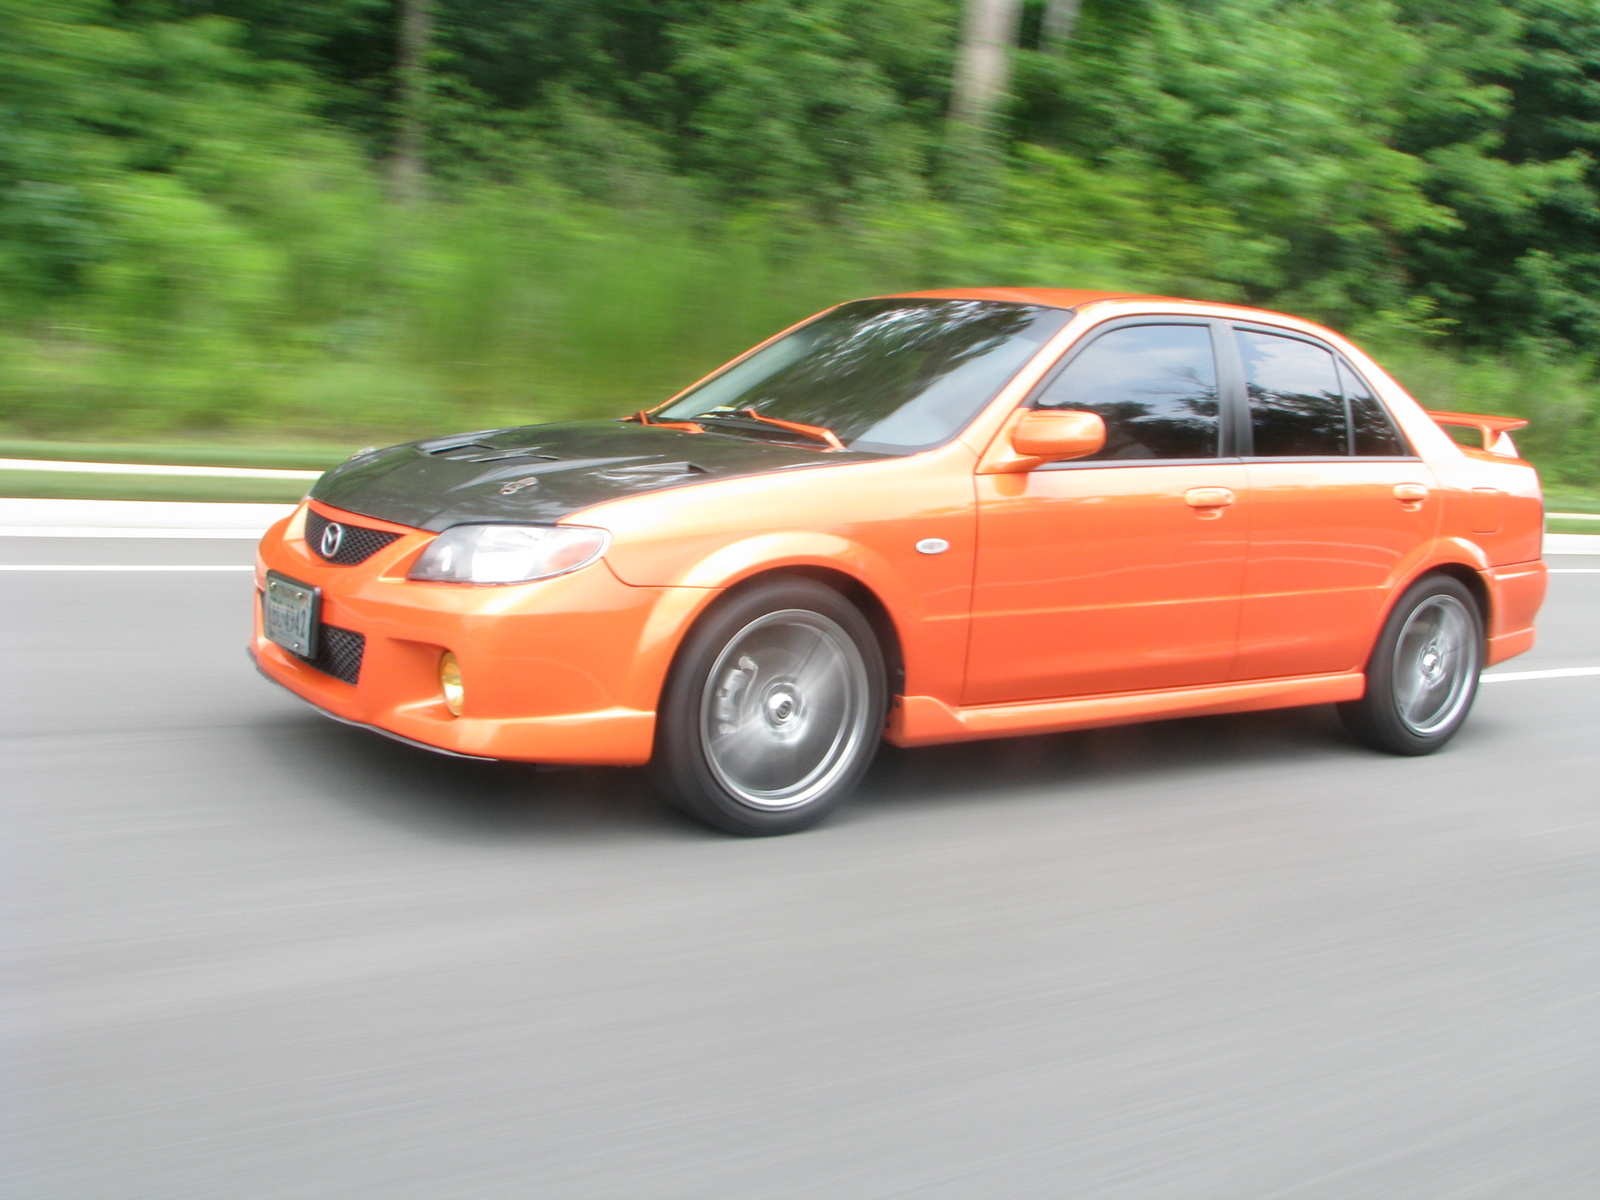 Mazda MAZDASPEED Protege 4 Dr Turbo Sedan - Pictures - 2003 Mazda ...